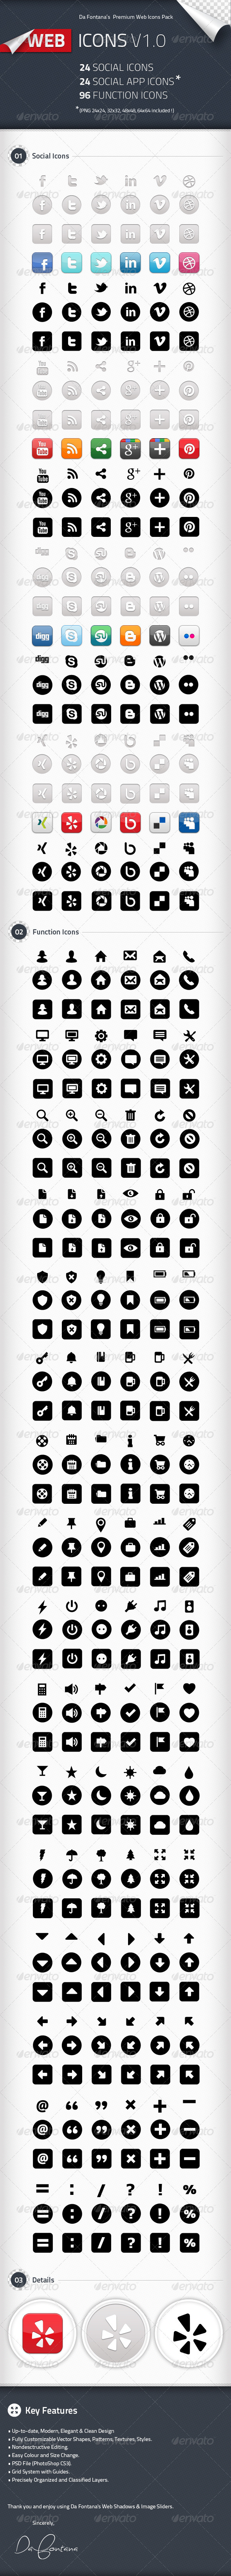 Social Icons, Social App Icons, Function Icons - Web Icons